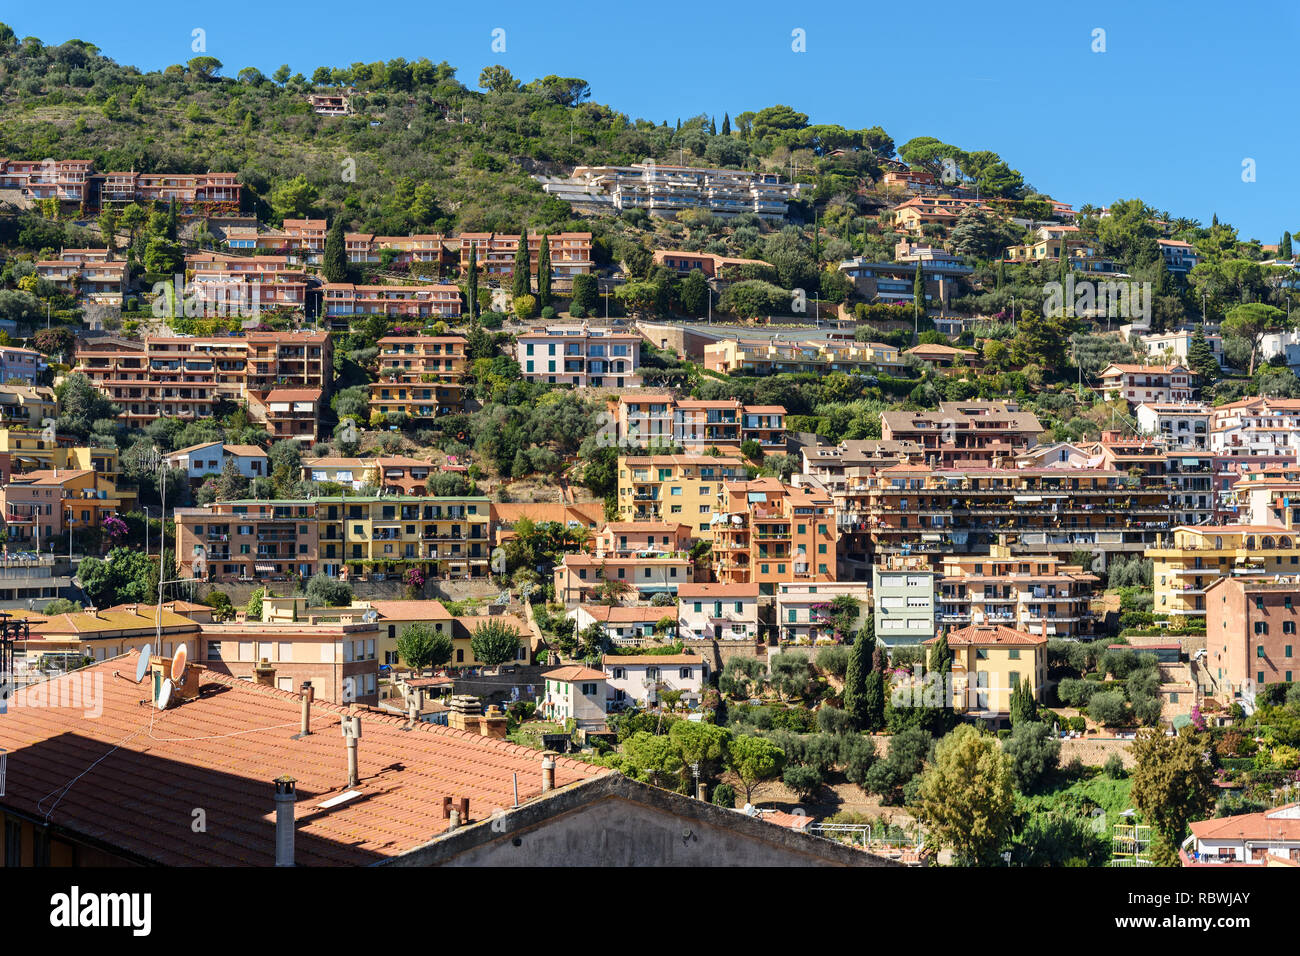 View of seaport town Porto Santo Stefano in Monte Argentario in Tuscany. Italy - Stock Image